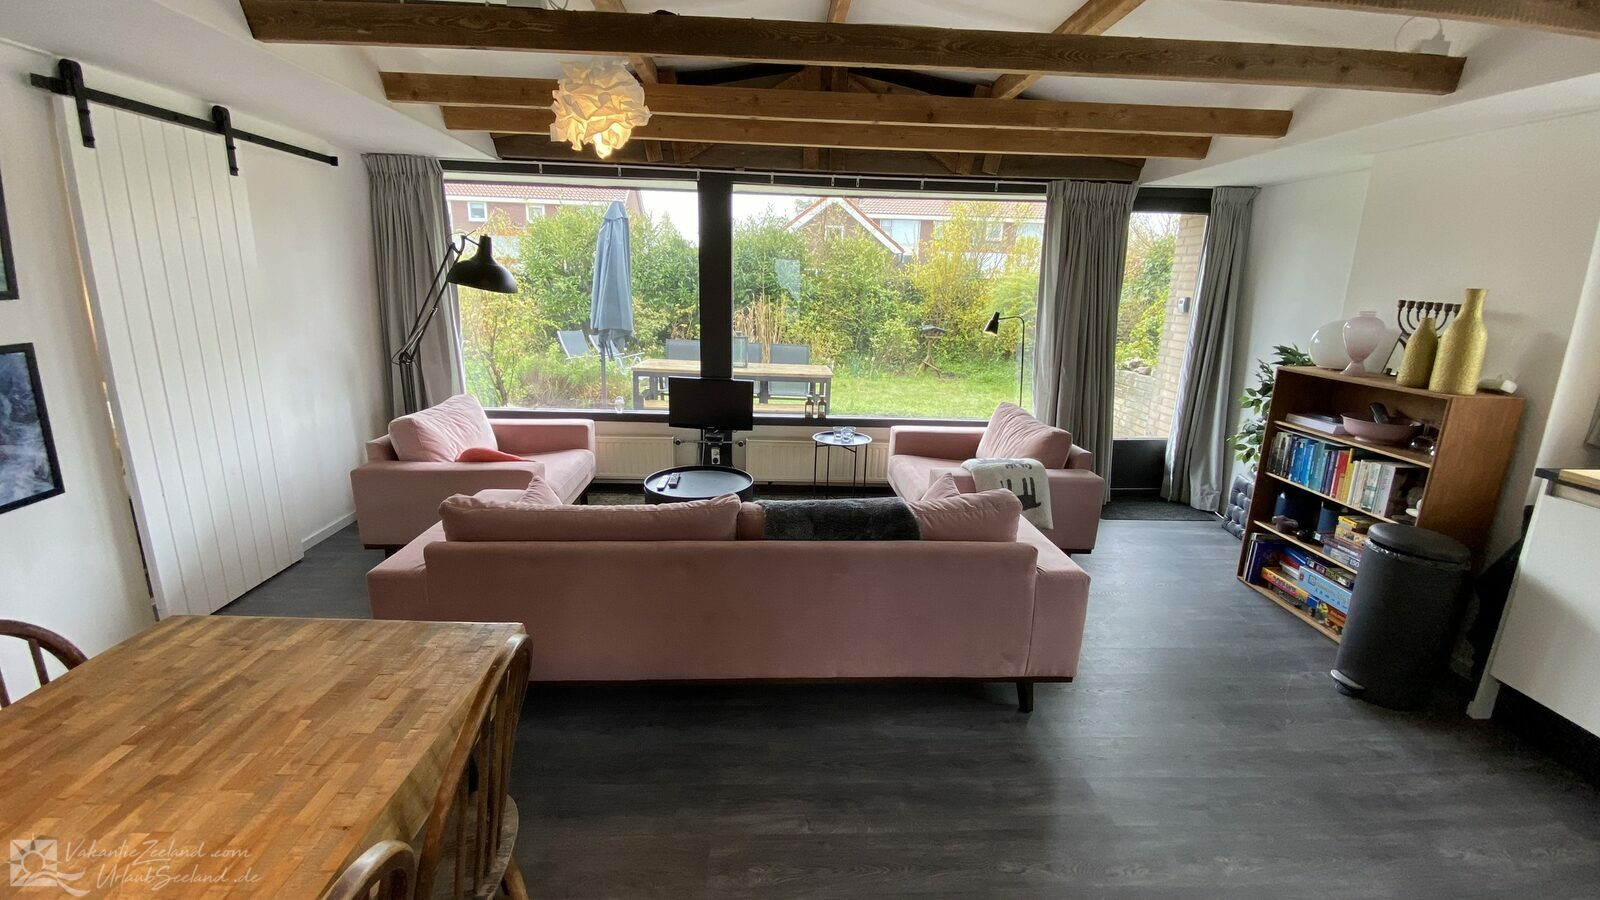 VZ934 Bungalow in Ouddorp